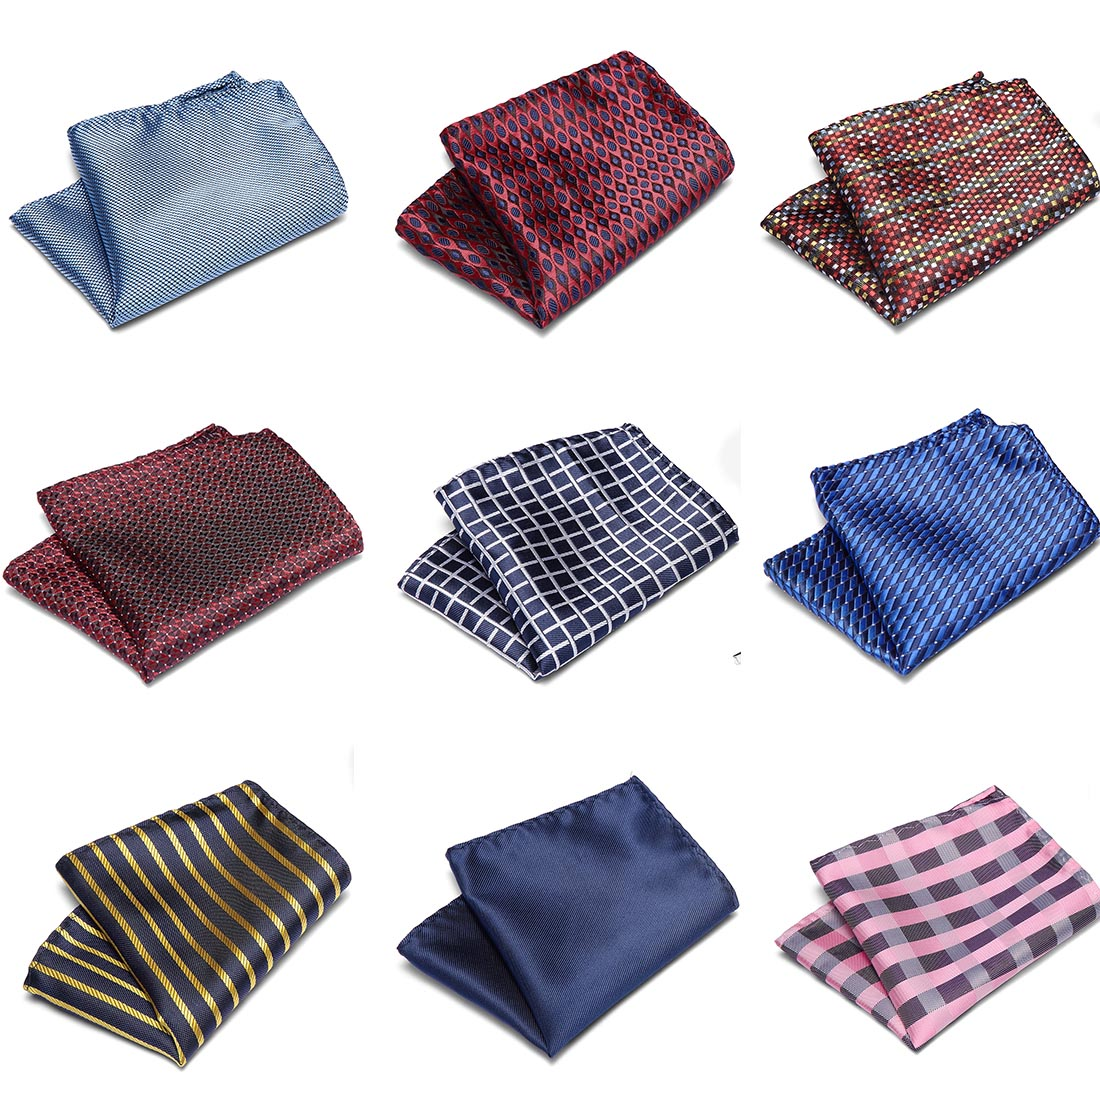 Men Wedding Pocket Square 100%Silk Match For Suit Tie Men's Handkerchief Accessories Jacquard Solid Dots Stripes Pattern 22*22cm